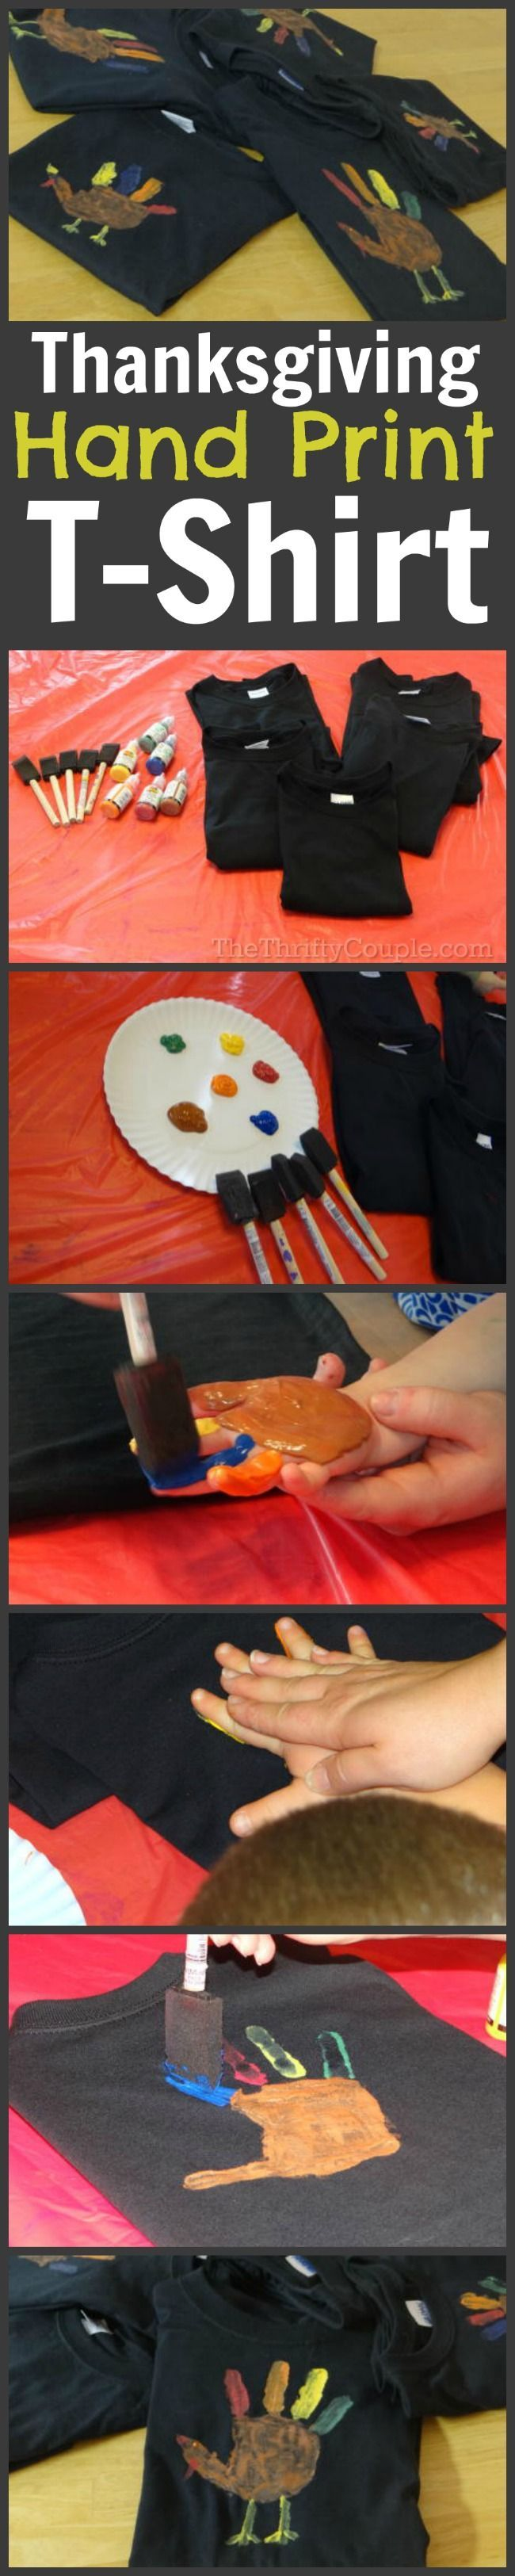 I love handprint and footprint crafts and this one is just awesome with the hand print forming a turkey - perfect for Thanksgiving and the fall season. And it is just so cool that it is on a t-shirt so it is practical too! What a great craft idea for Thanksgiving!